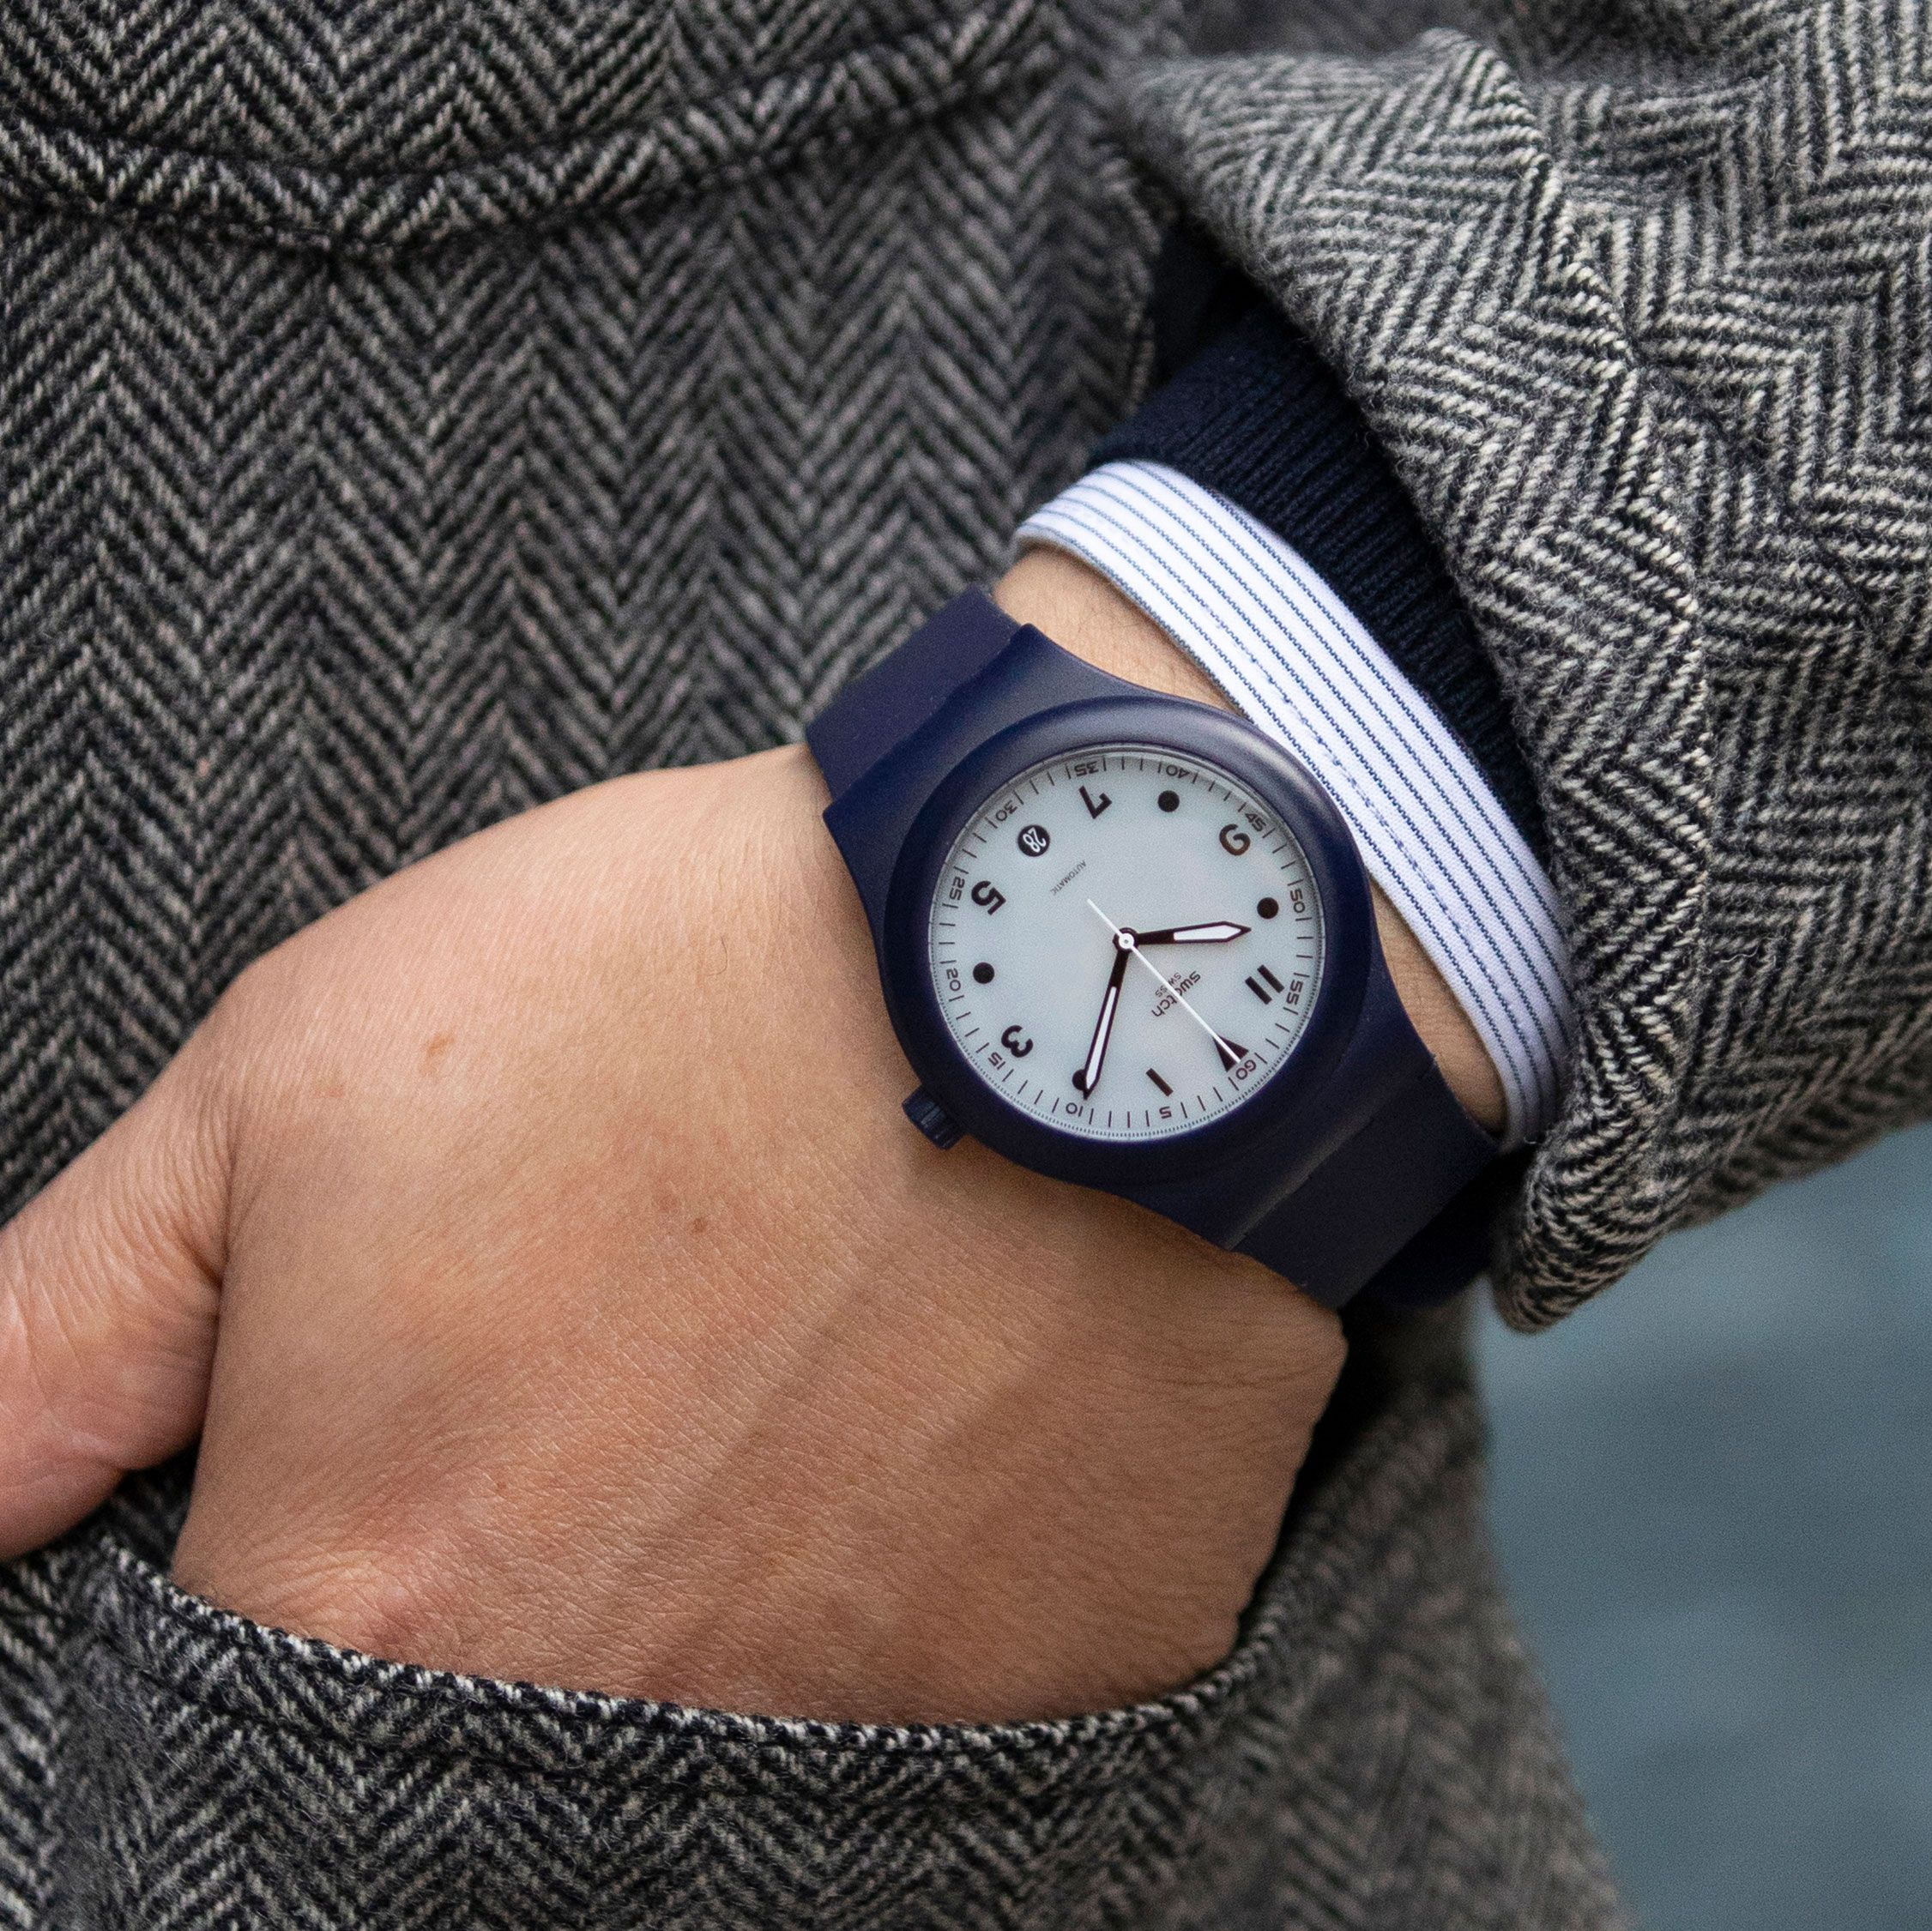 Swatch and Hodinkee's Latest Timepiece Packs a Lot of Style Into an Affordable Package